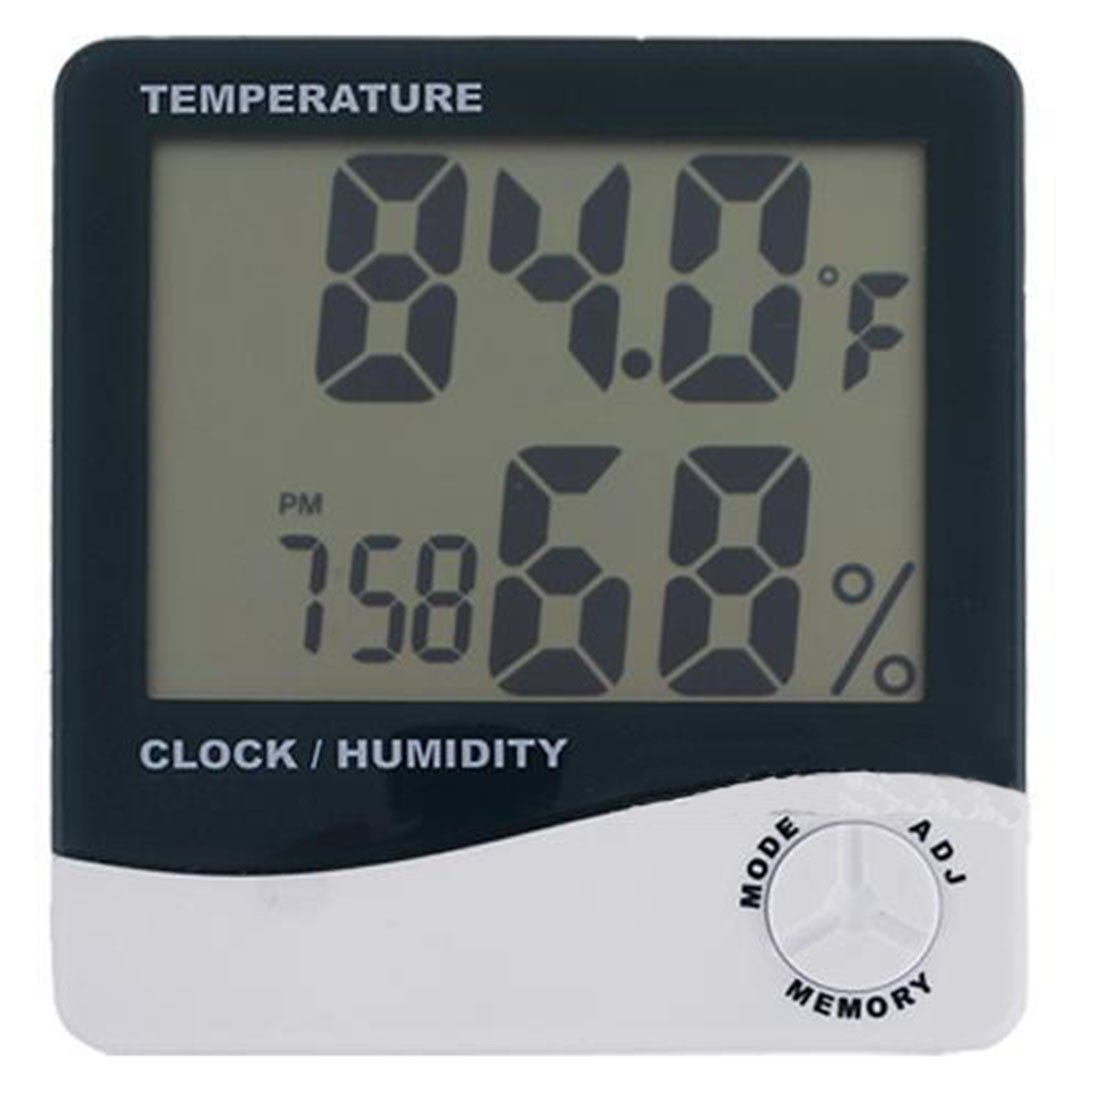 [해외]새로운 날씨 역 디지털 LCD 온도계 습도계 온도 습도계 게이지 시계 알람/New Weather Station Digital LCD Thermometer Hygrometer Temperature Humidity Meter Gauge Clock Alarm Whol